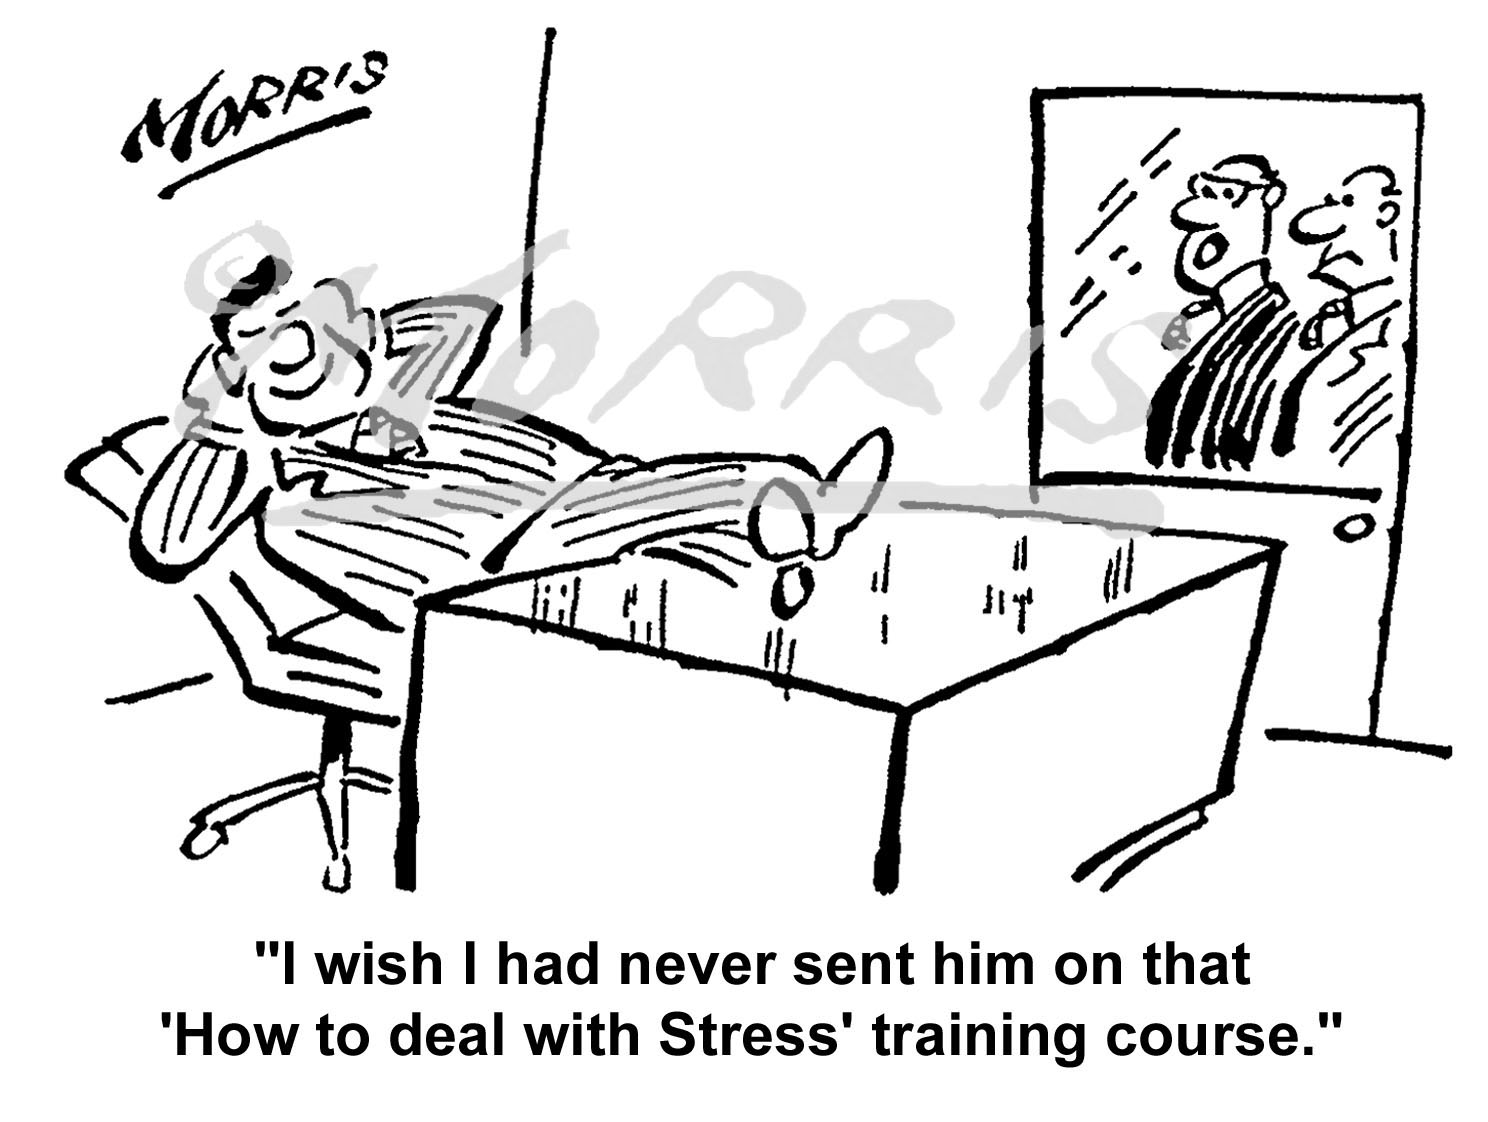 Office stress training course cartoon